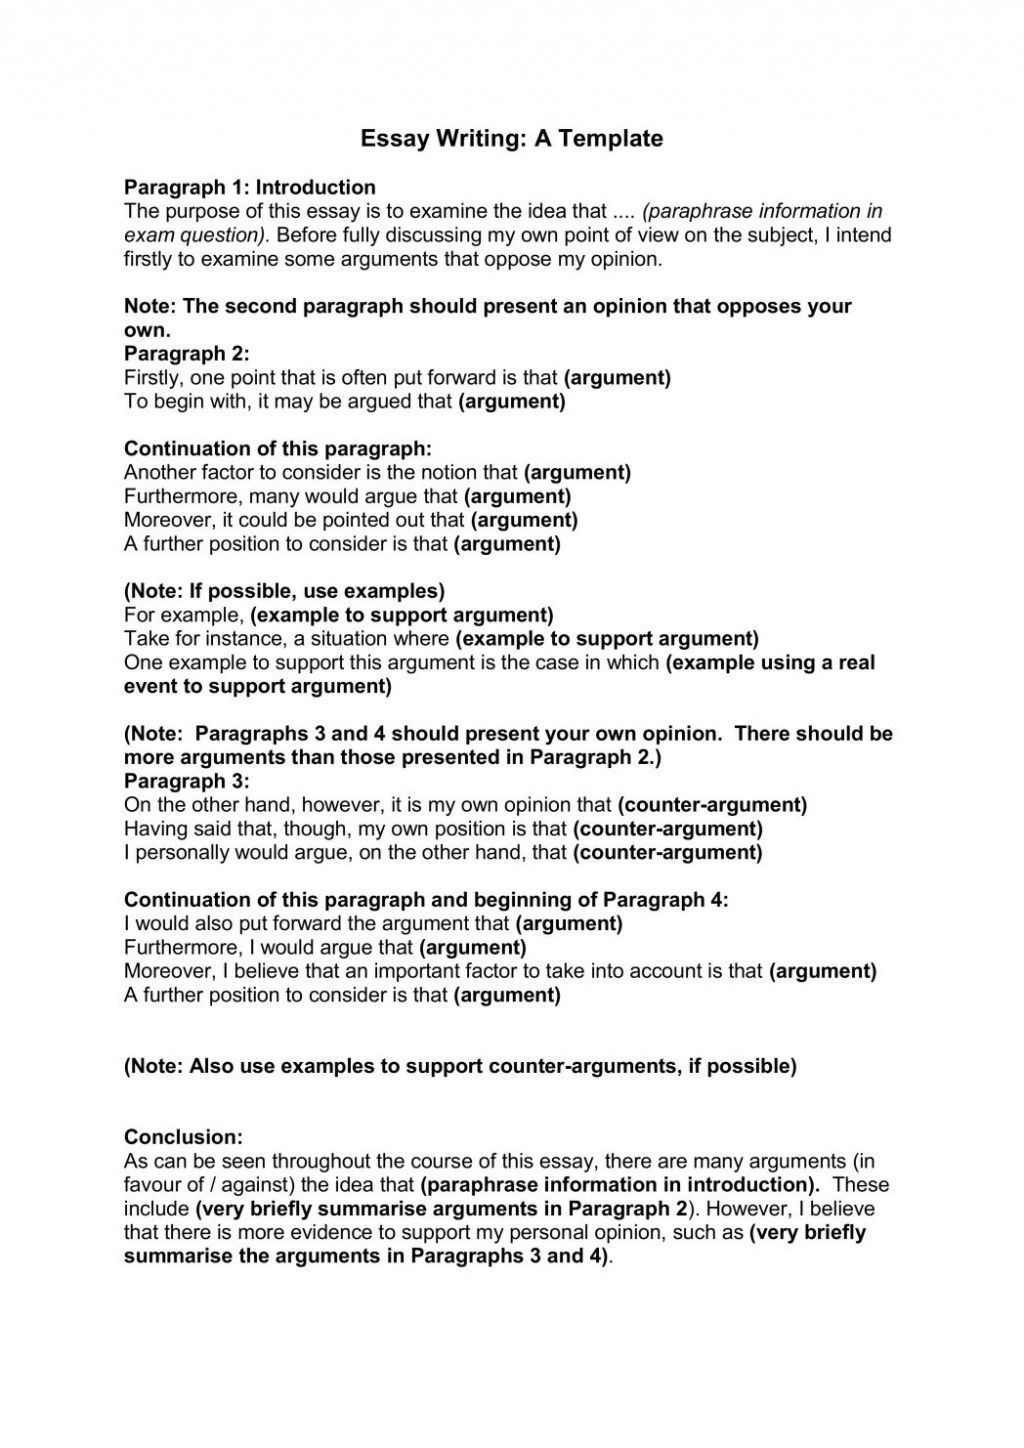 022 Essay Example Argumentative Thesis For Literary How To Write Writing Template P An Statements And Paragraphs Do I Statement You Sentence Formidable Examples Exercises Format Large